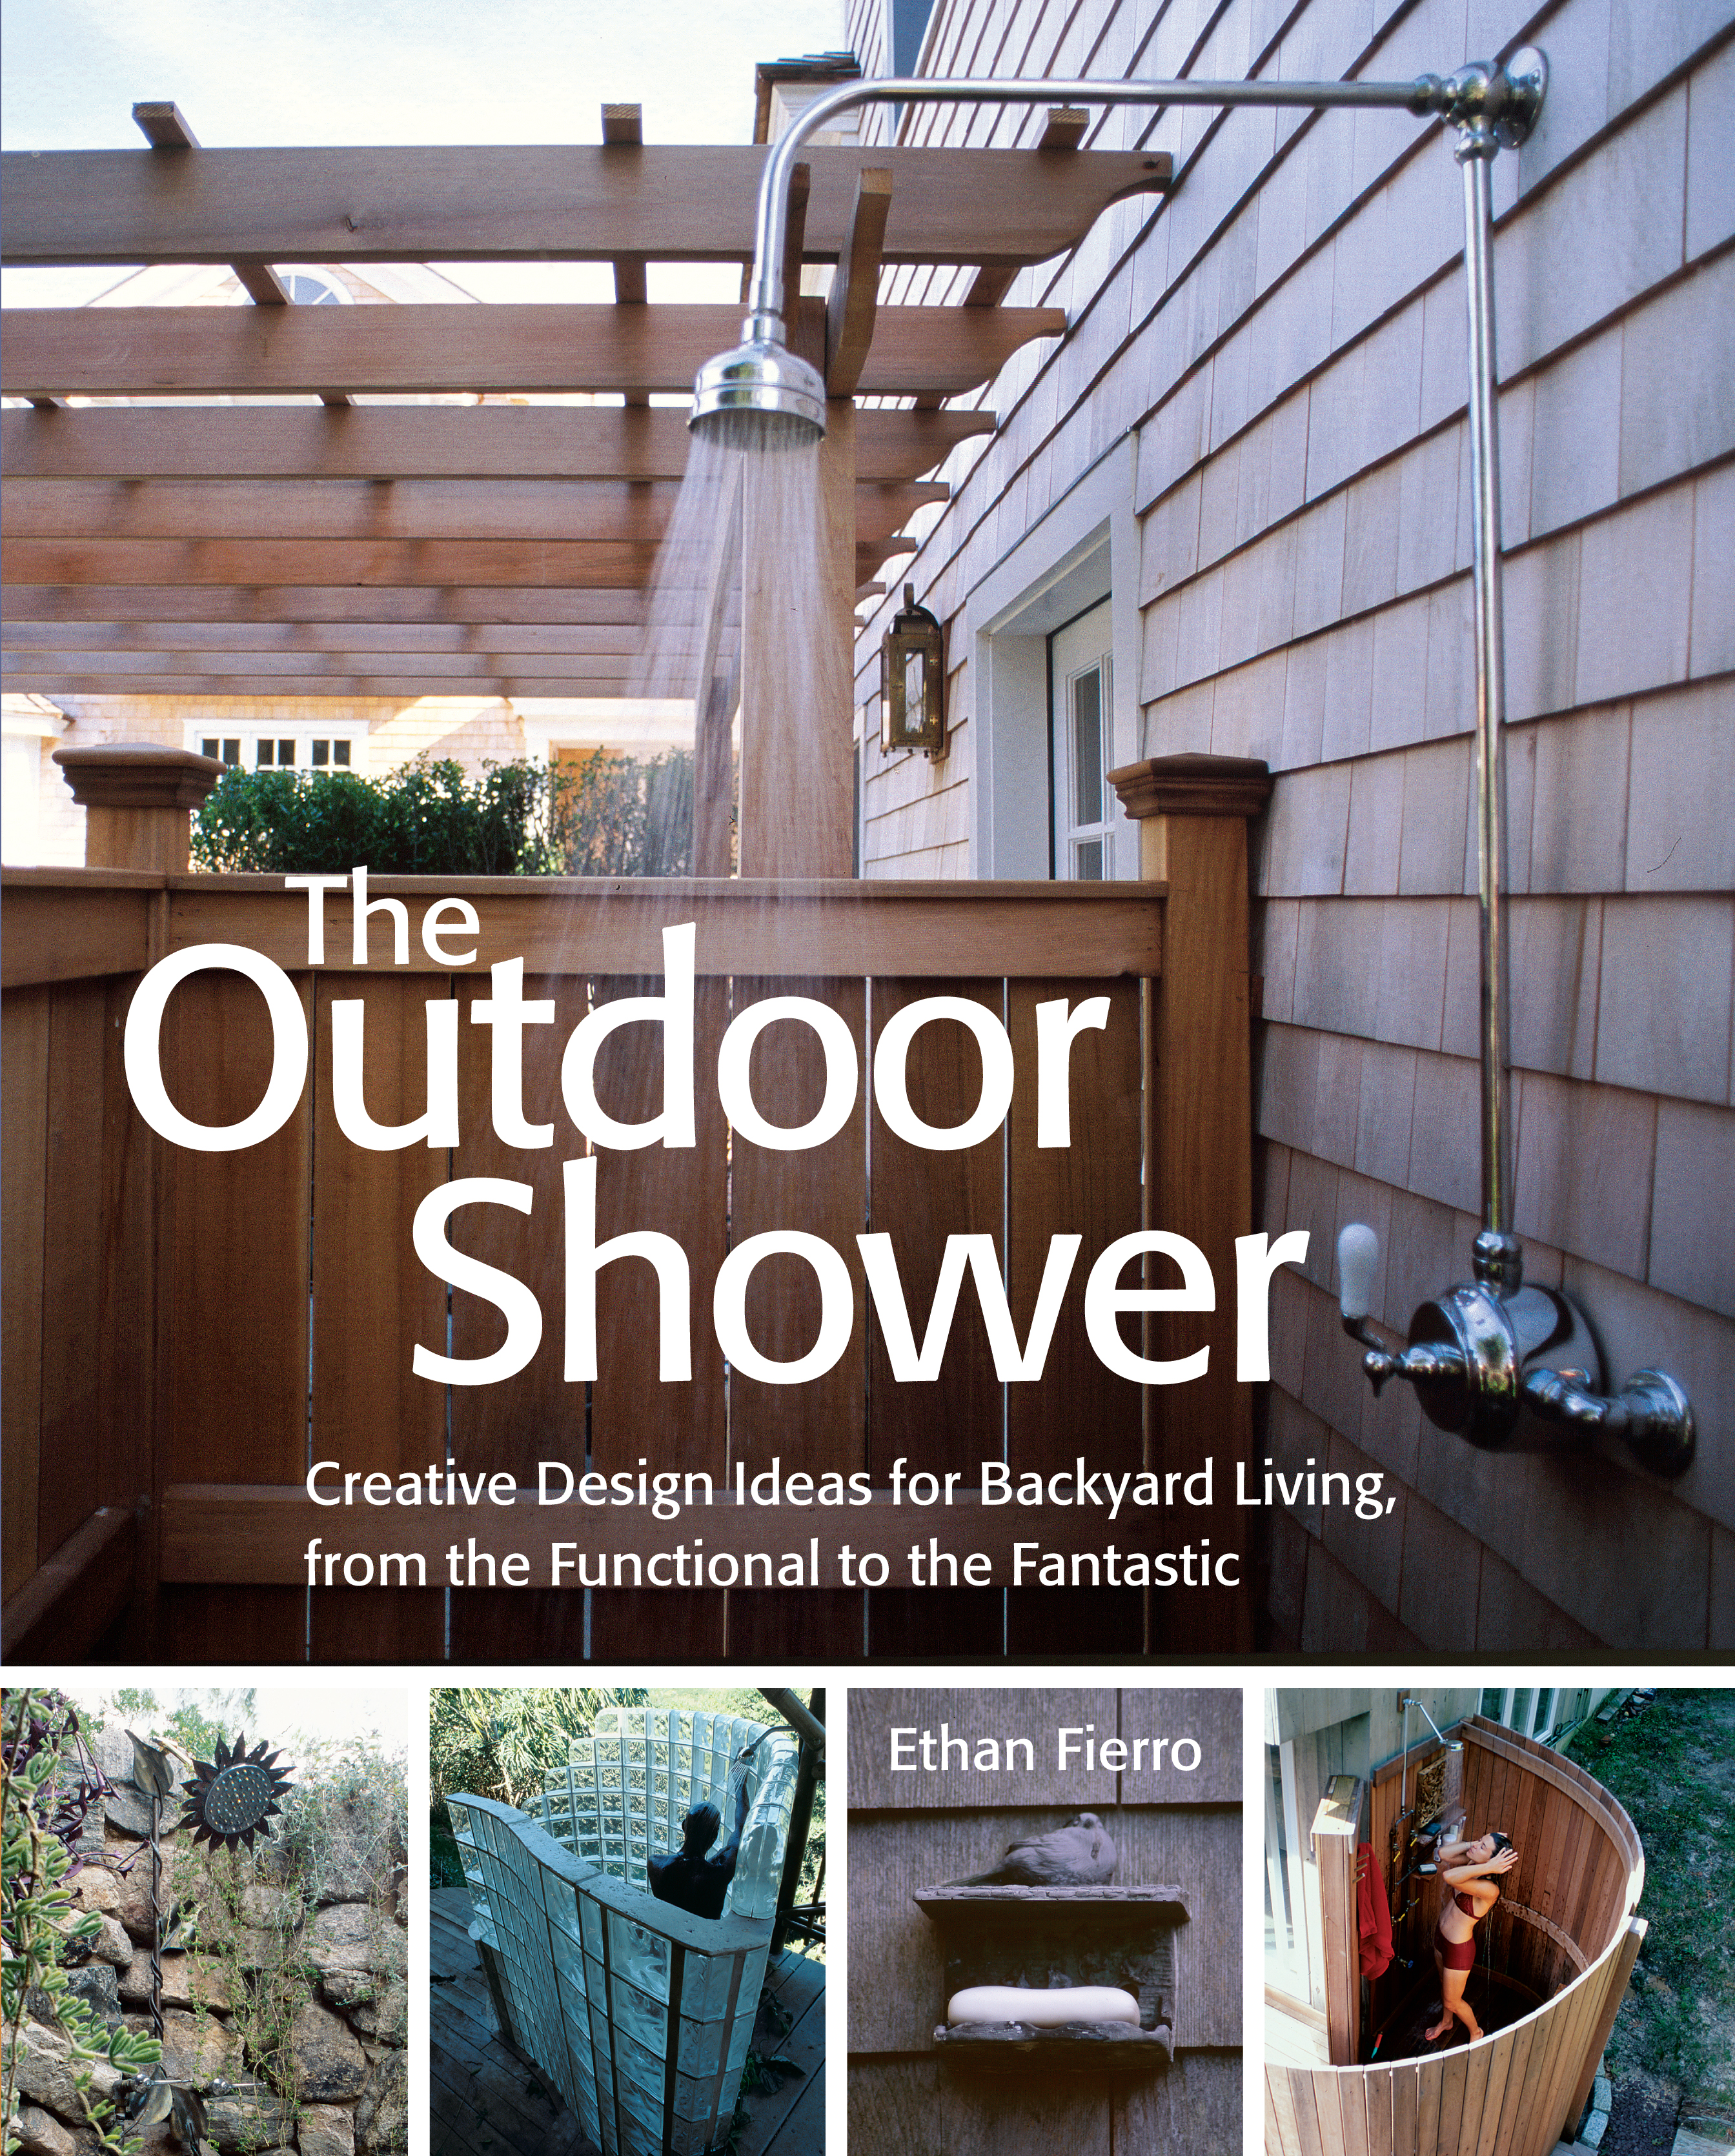 The Outdoor Shower Creative design ideas for backyard living, from the functional to the fantastic - Ethan Fierro